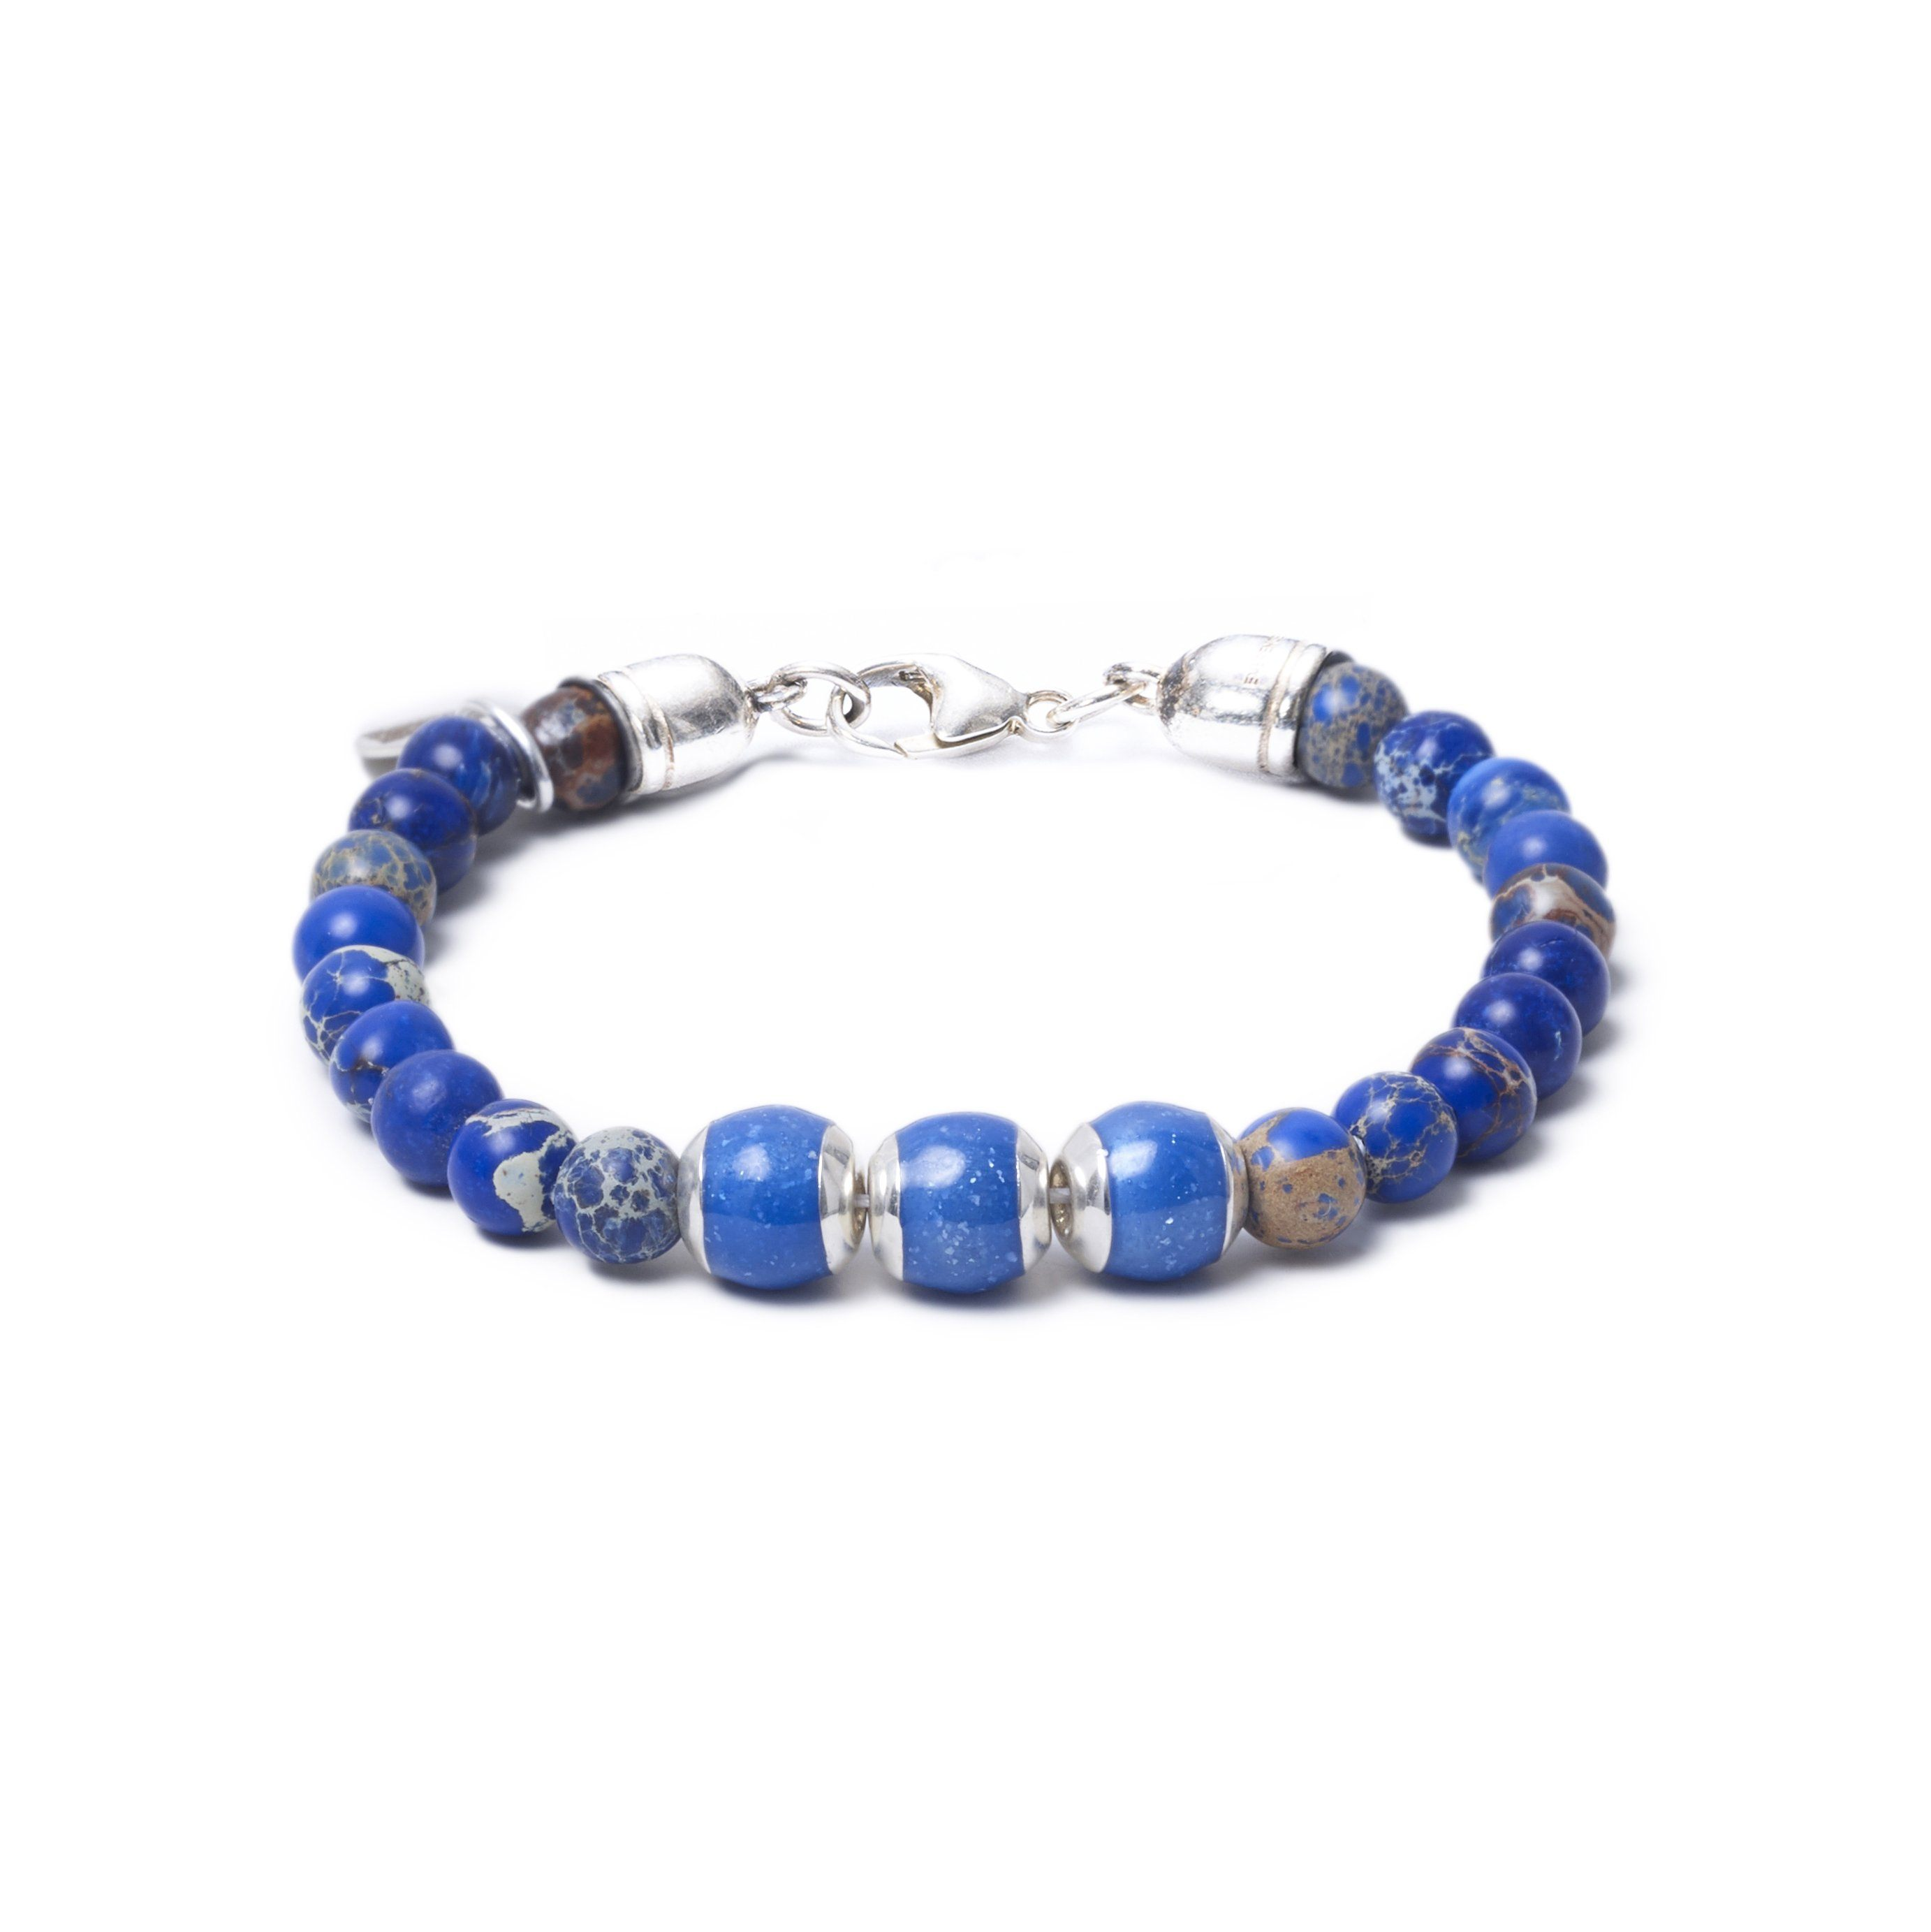 Blue Sea Jasper, Three Everence Beads everence.life Blue Lobster Claw 7